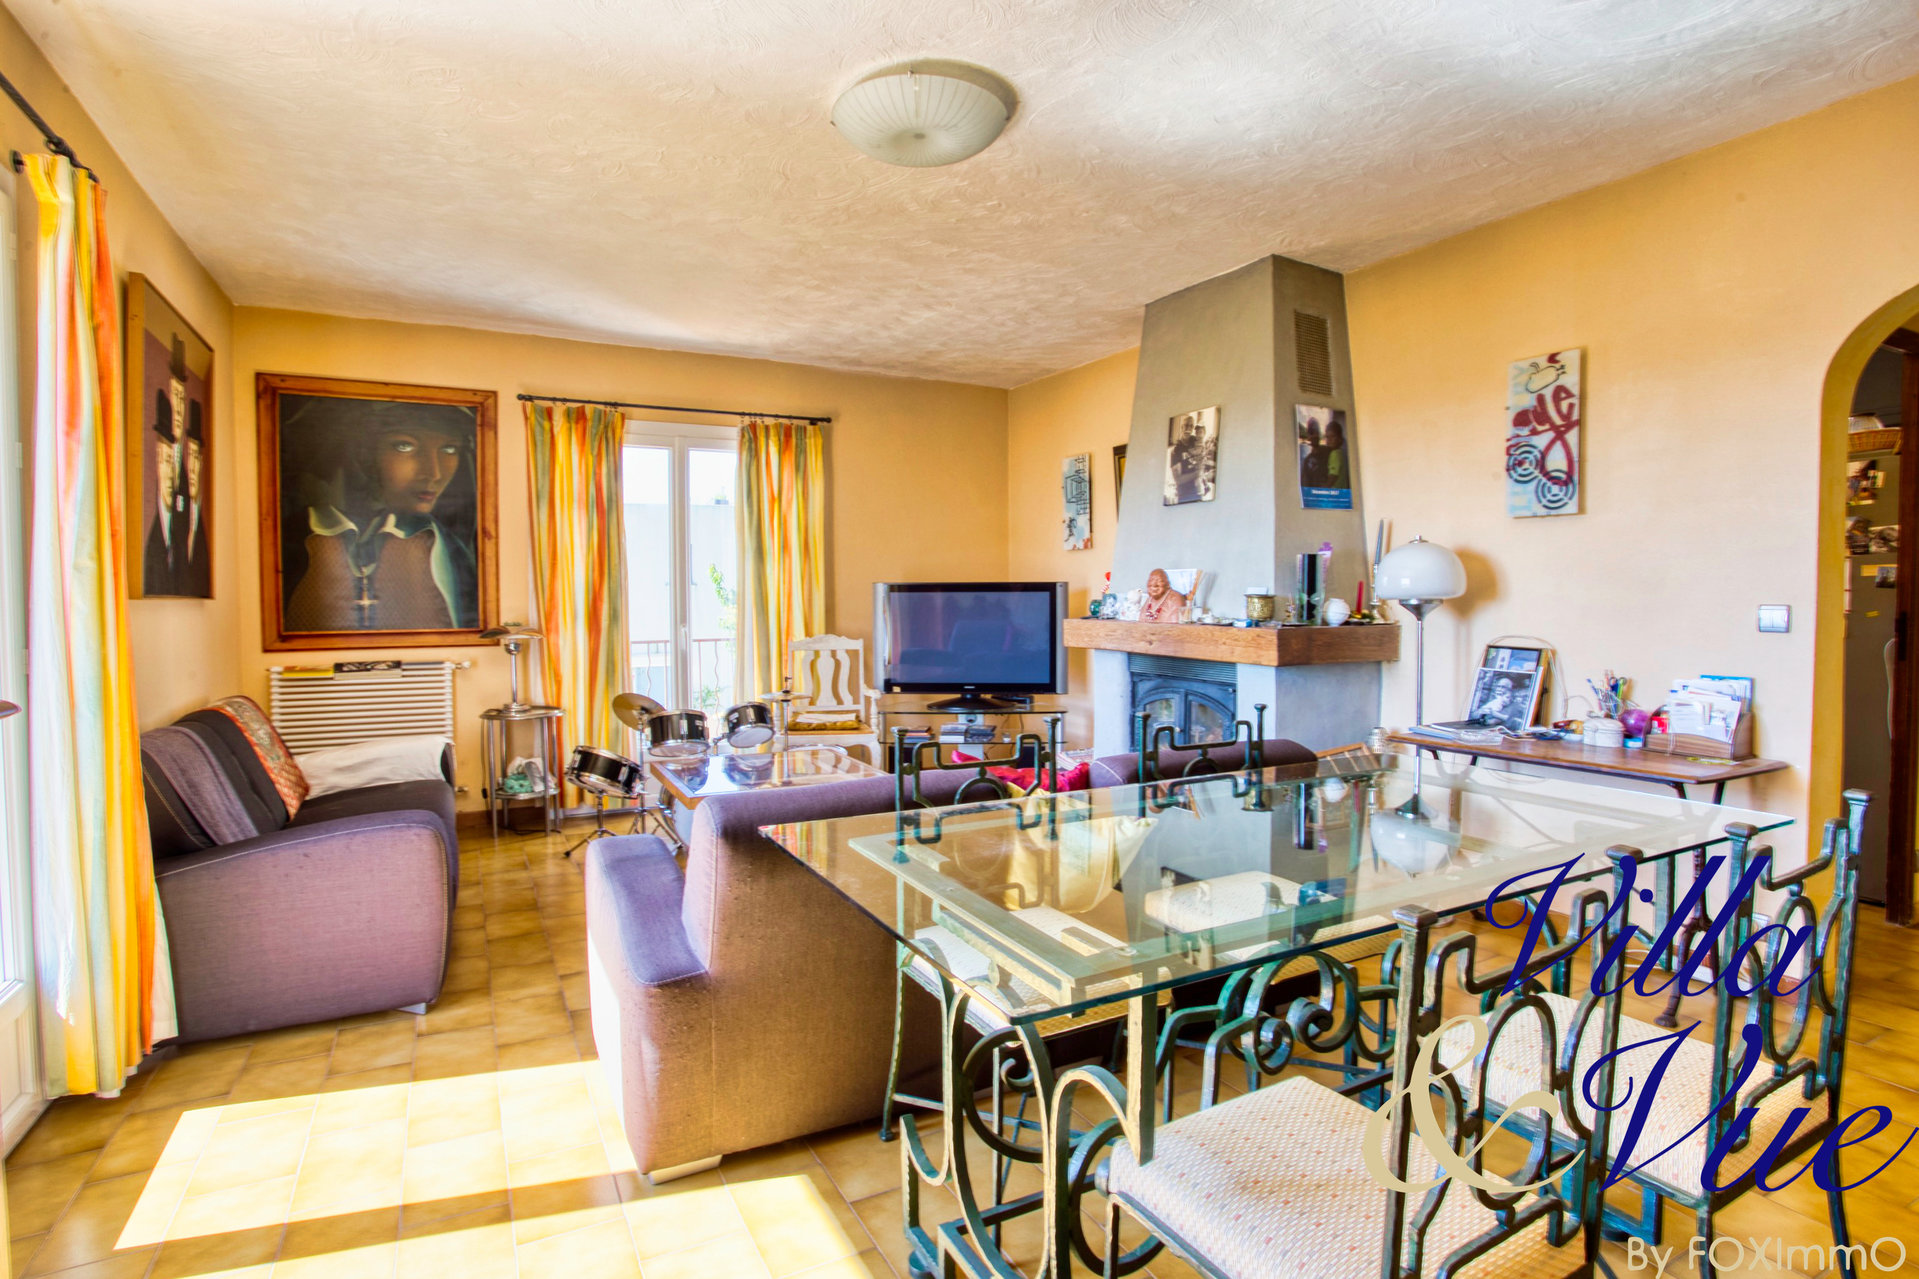 Beautiful house for sale in 2 apartments, Vence/ St Jeannet, sea and mountain views